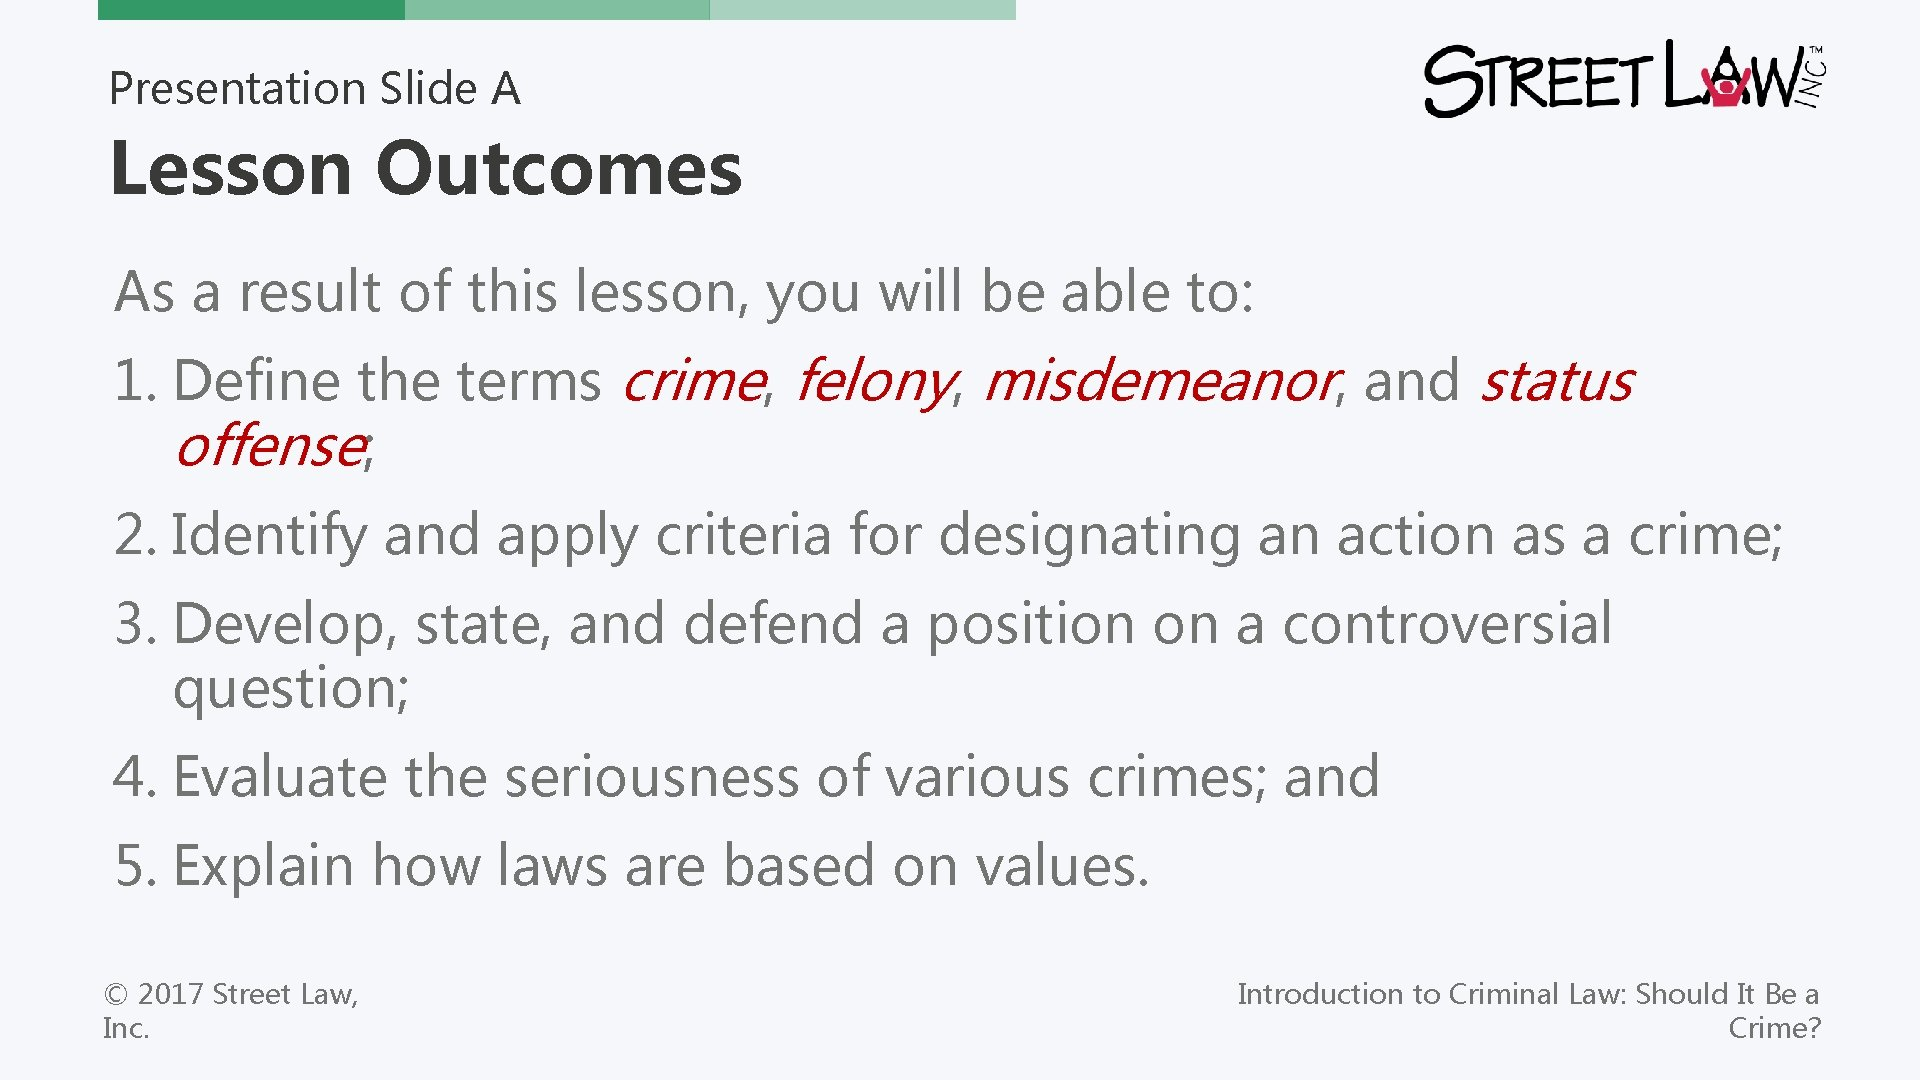 Presentation Slide A Lesson Outcomes As a result of this lesson, you will be